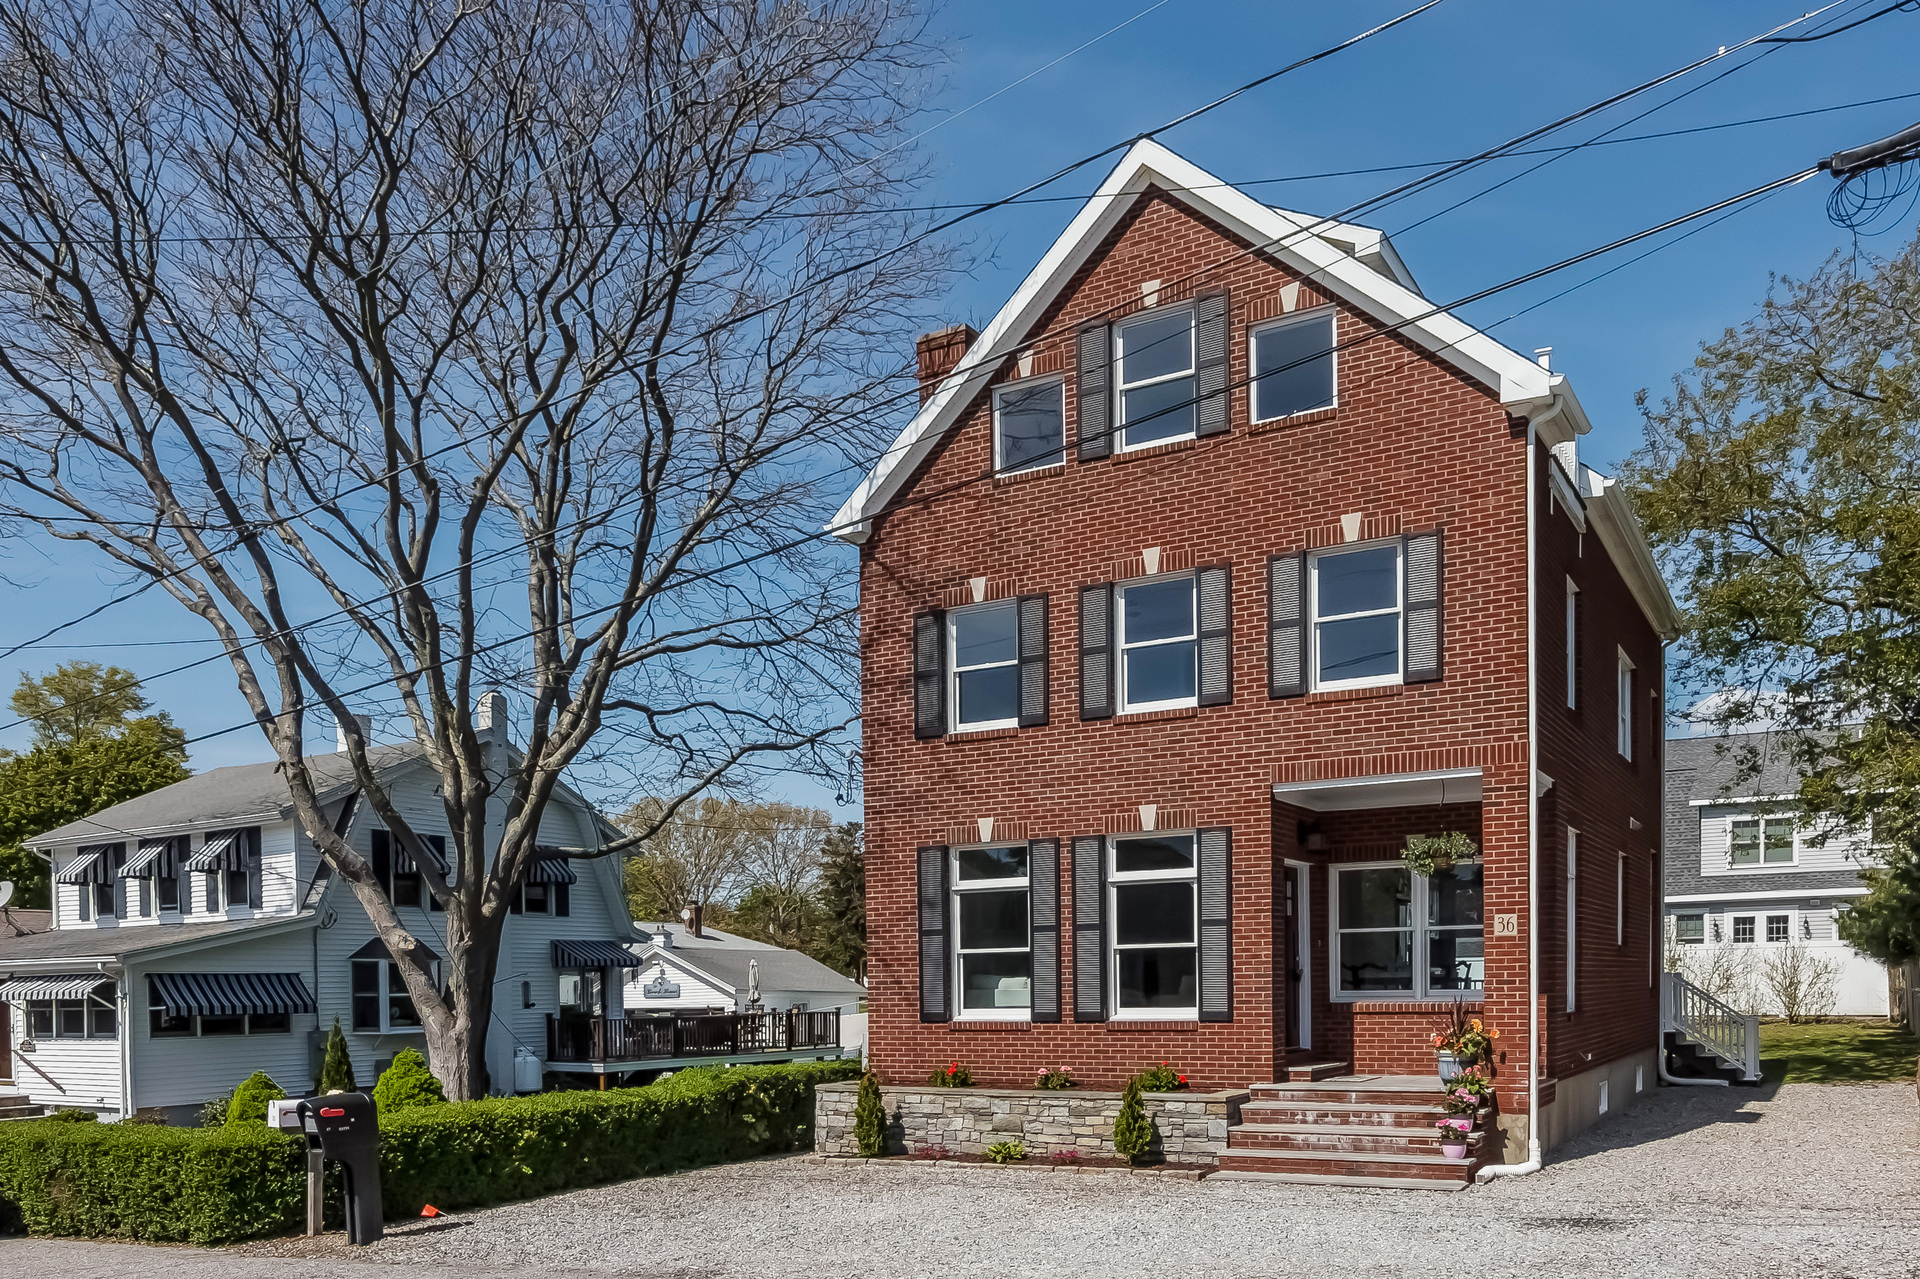 Single Family Home for Sale at 36 Clearwater Rd Old Saybrook, Connecticut, 06475 United States